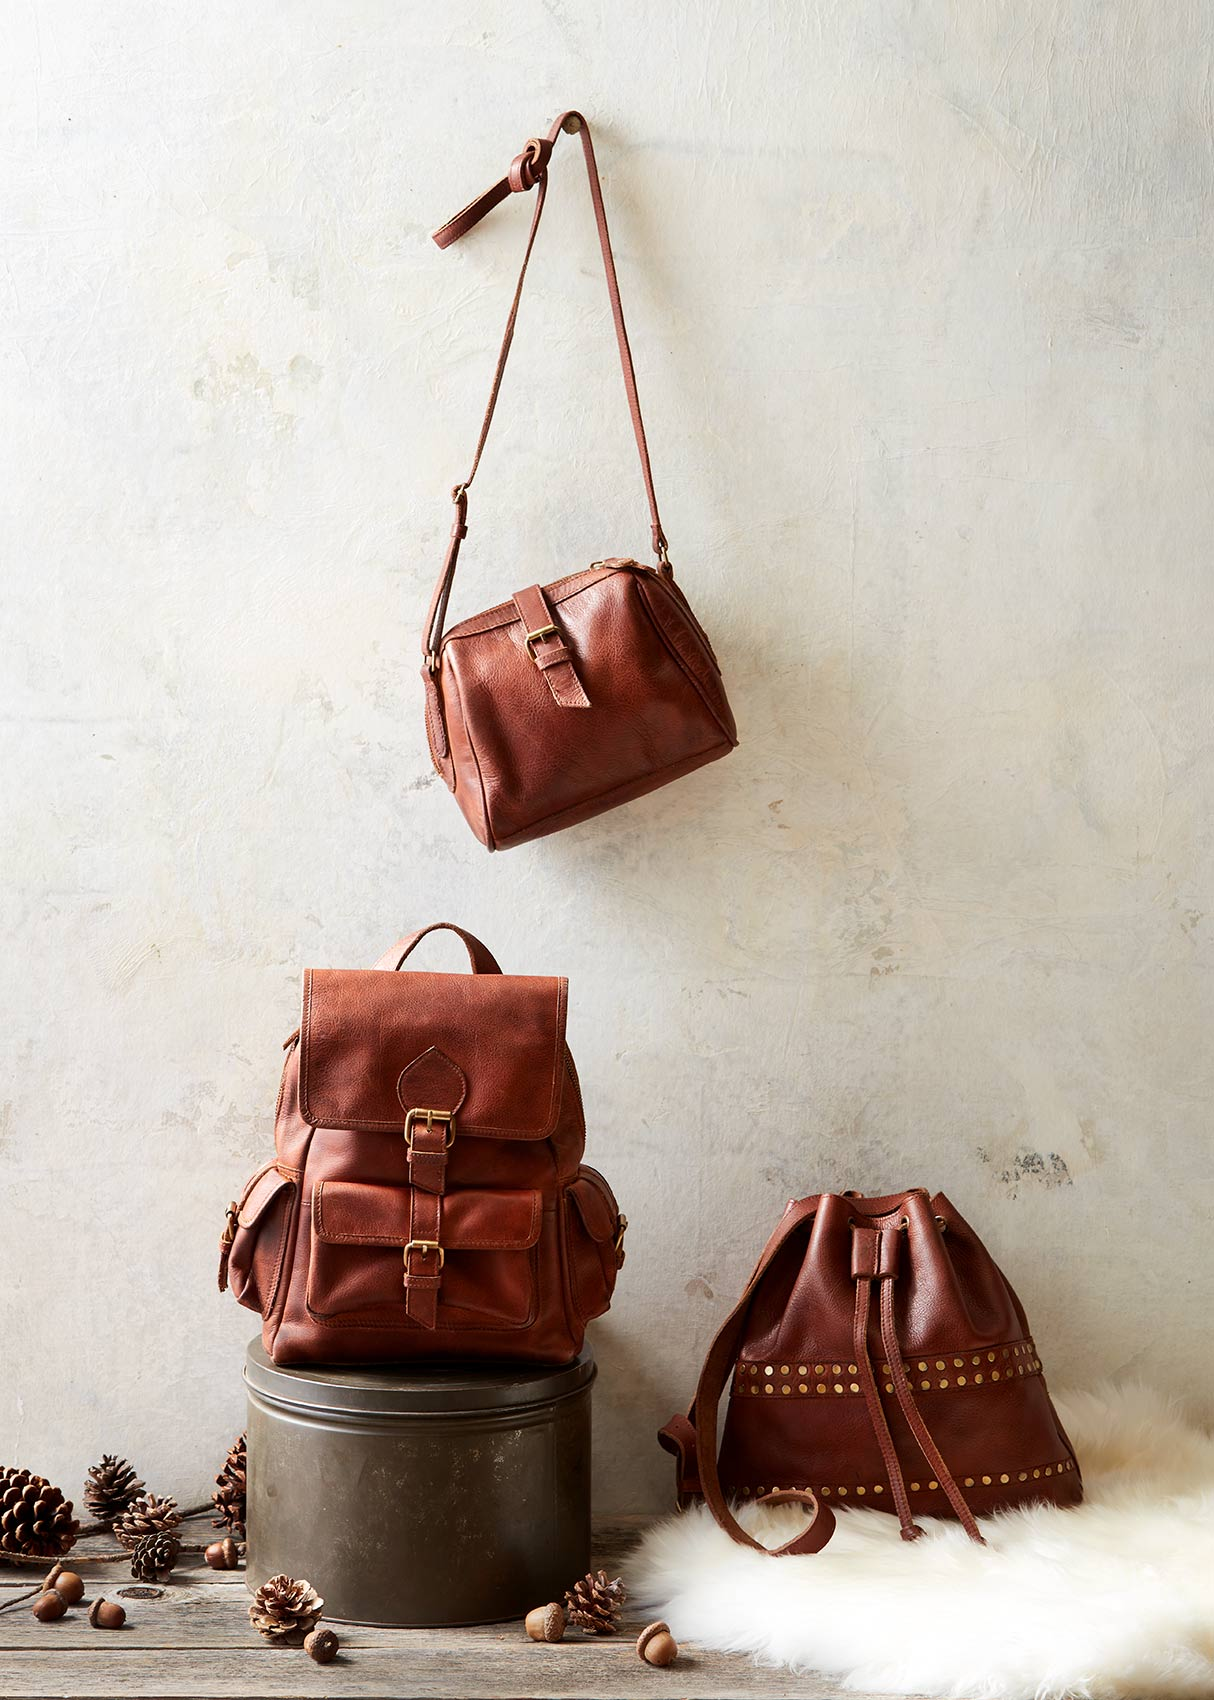 Catalog photography featuring bags and shoes.